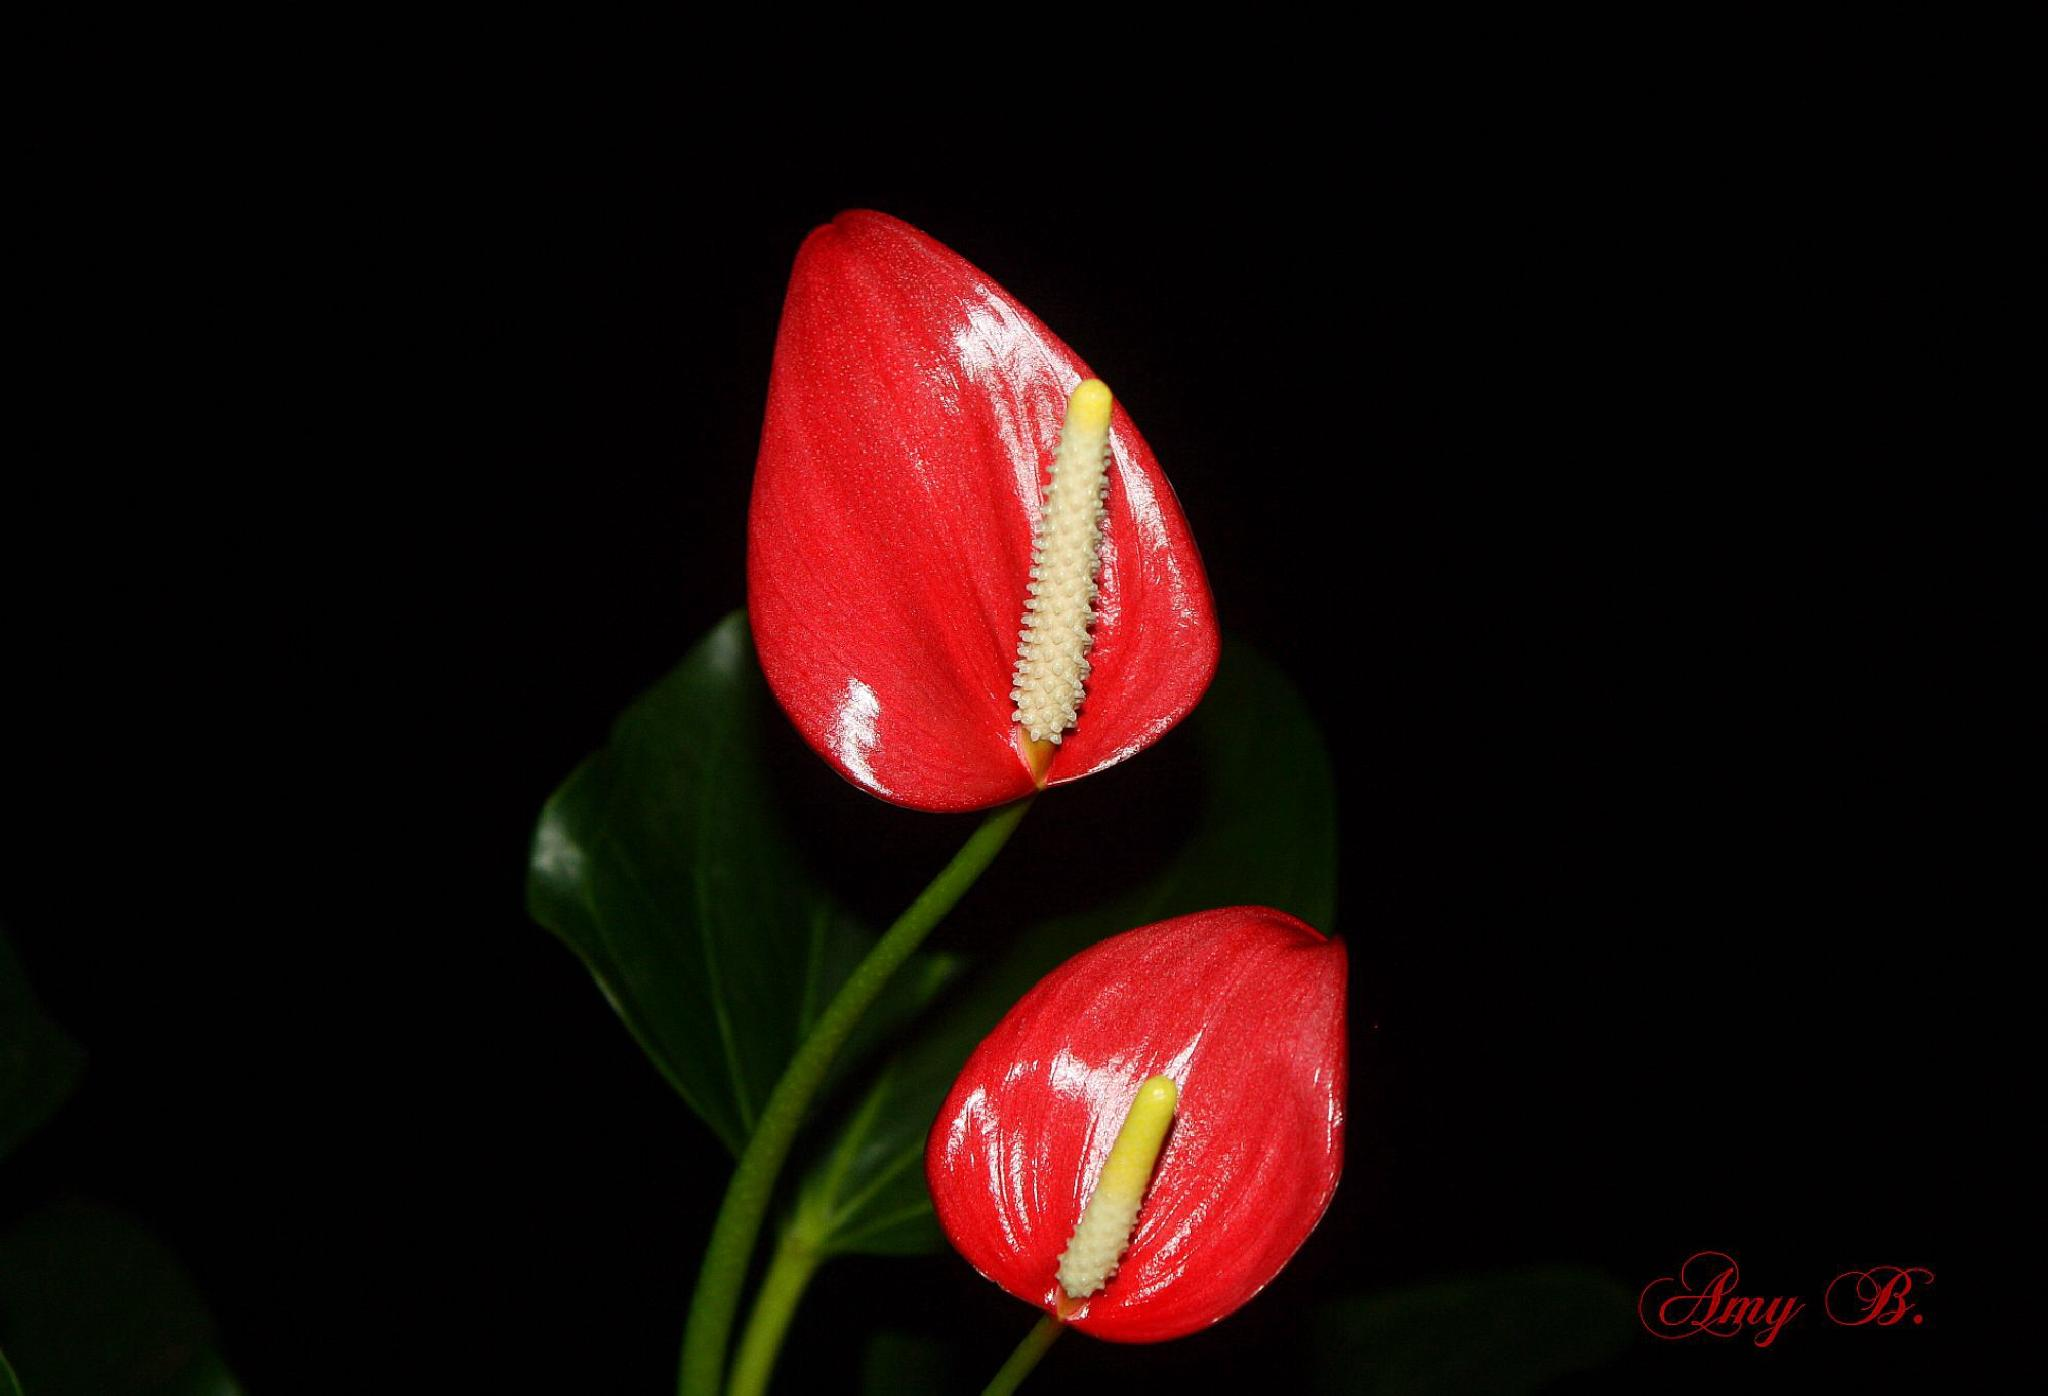 Red and yellow flower at night by amy.conger.9